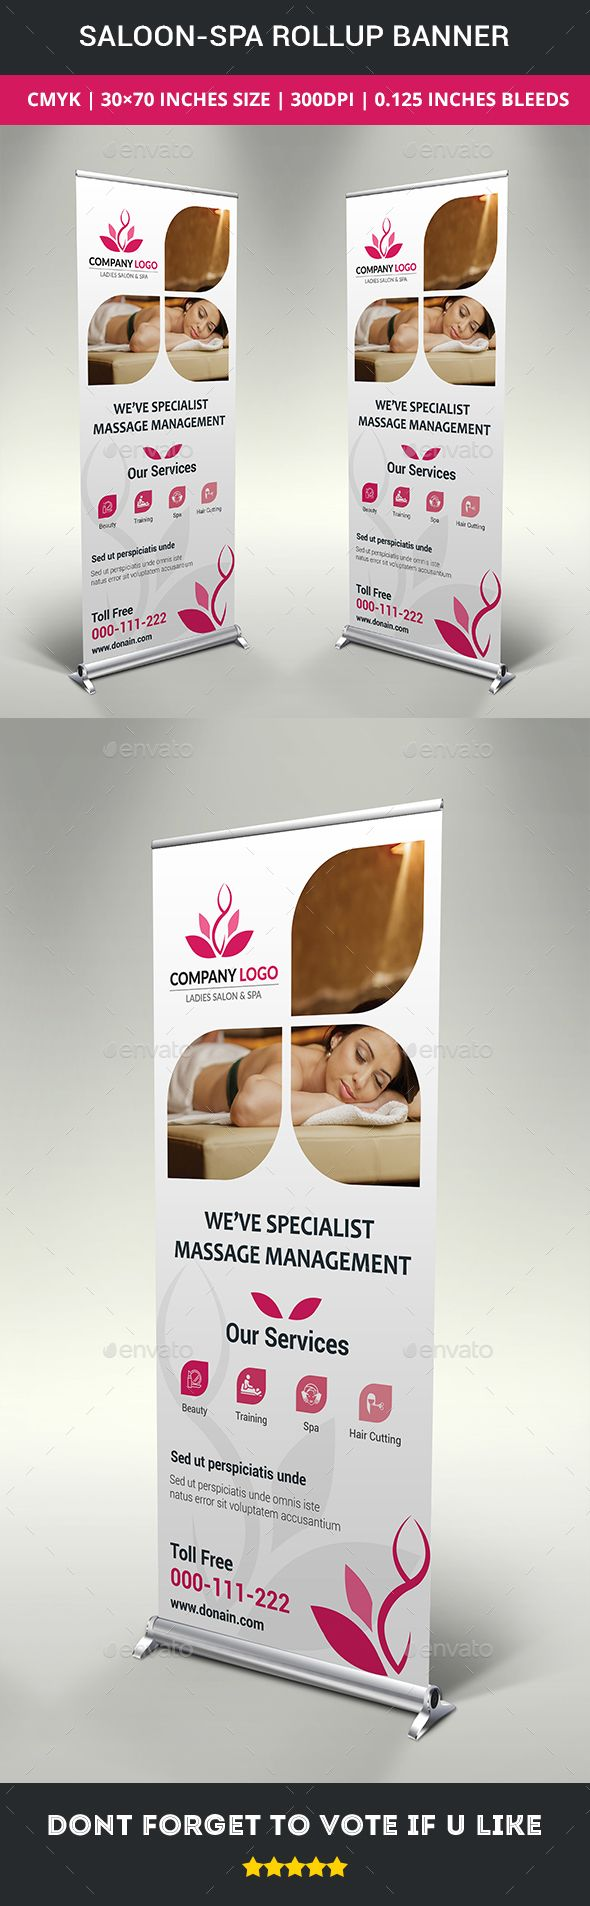 Saloon-Spa Rollup Banner  This is simple, eye catching & corporate rollup banner...